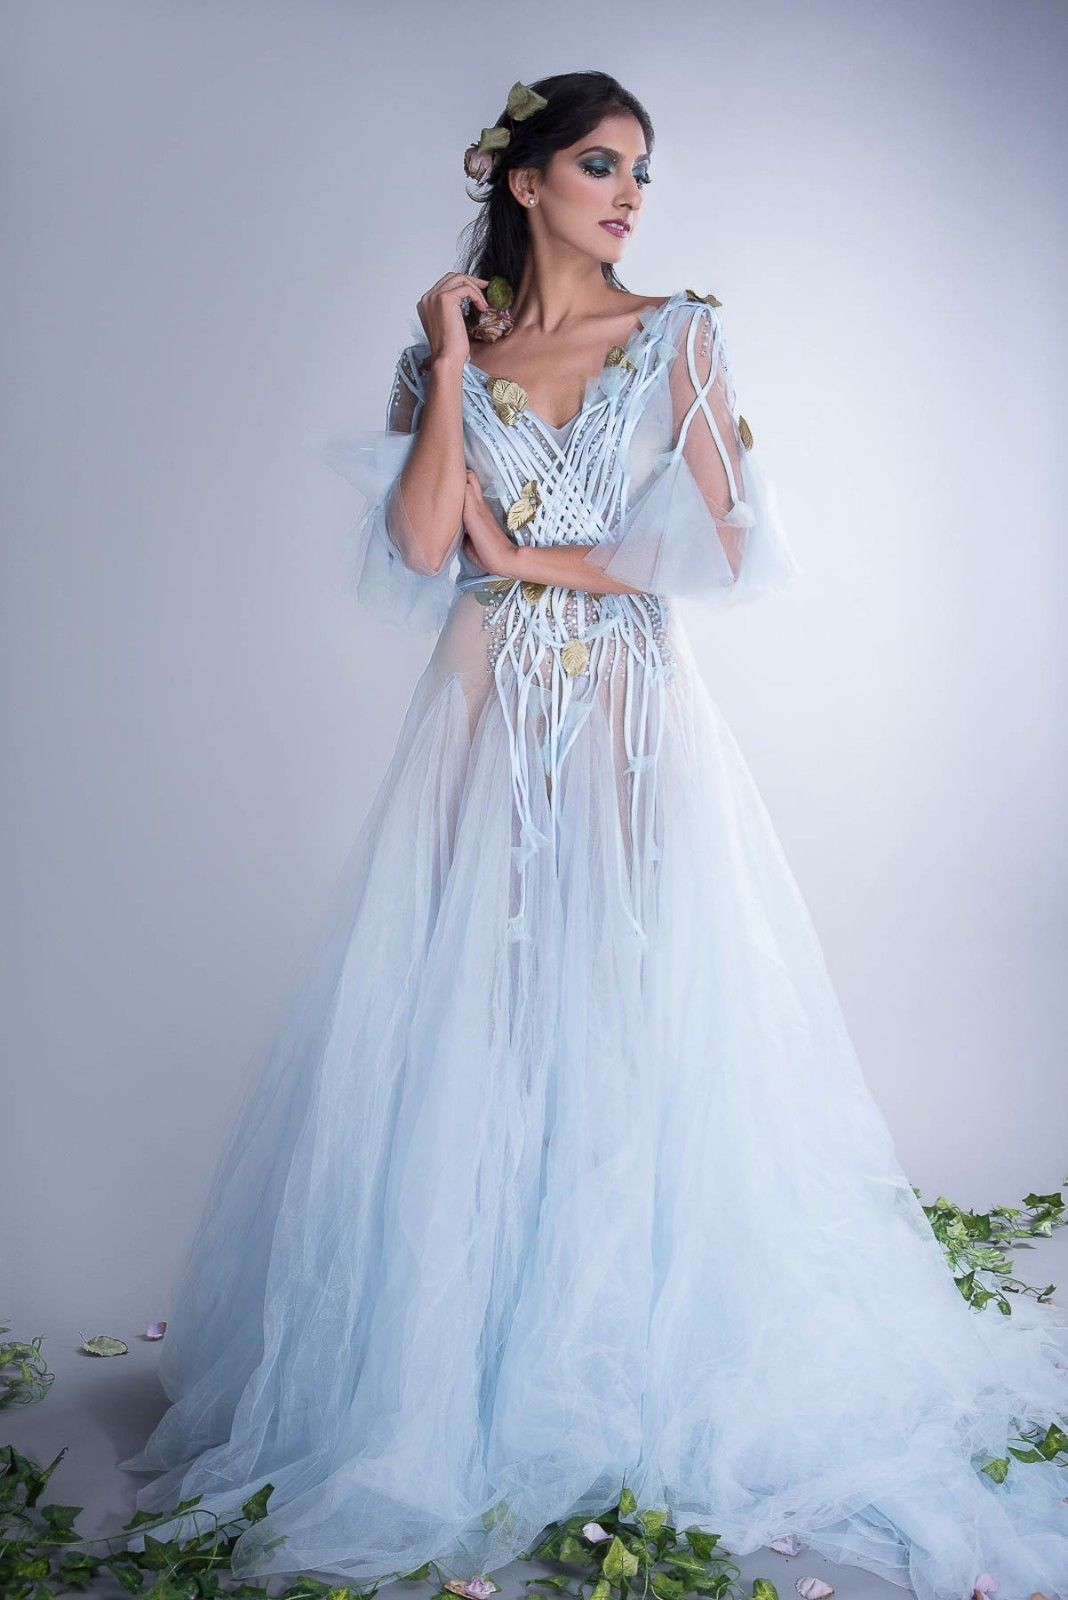 44d460accb3d Light Blue Whimsical Wedding Quinceanera Tulle Custom-Made Gown w/ Leaves  Manufacturer: Unbranded Size: See Measurements Below – fits a Size 2  Manufacturer ...